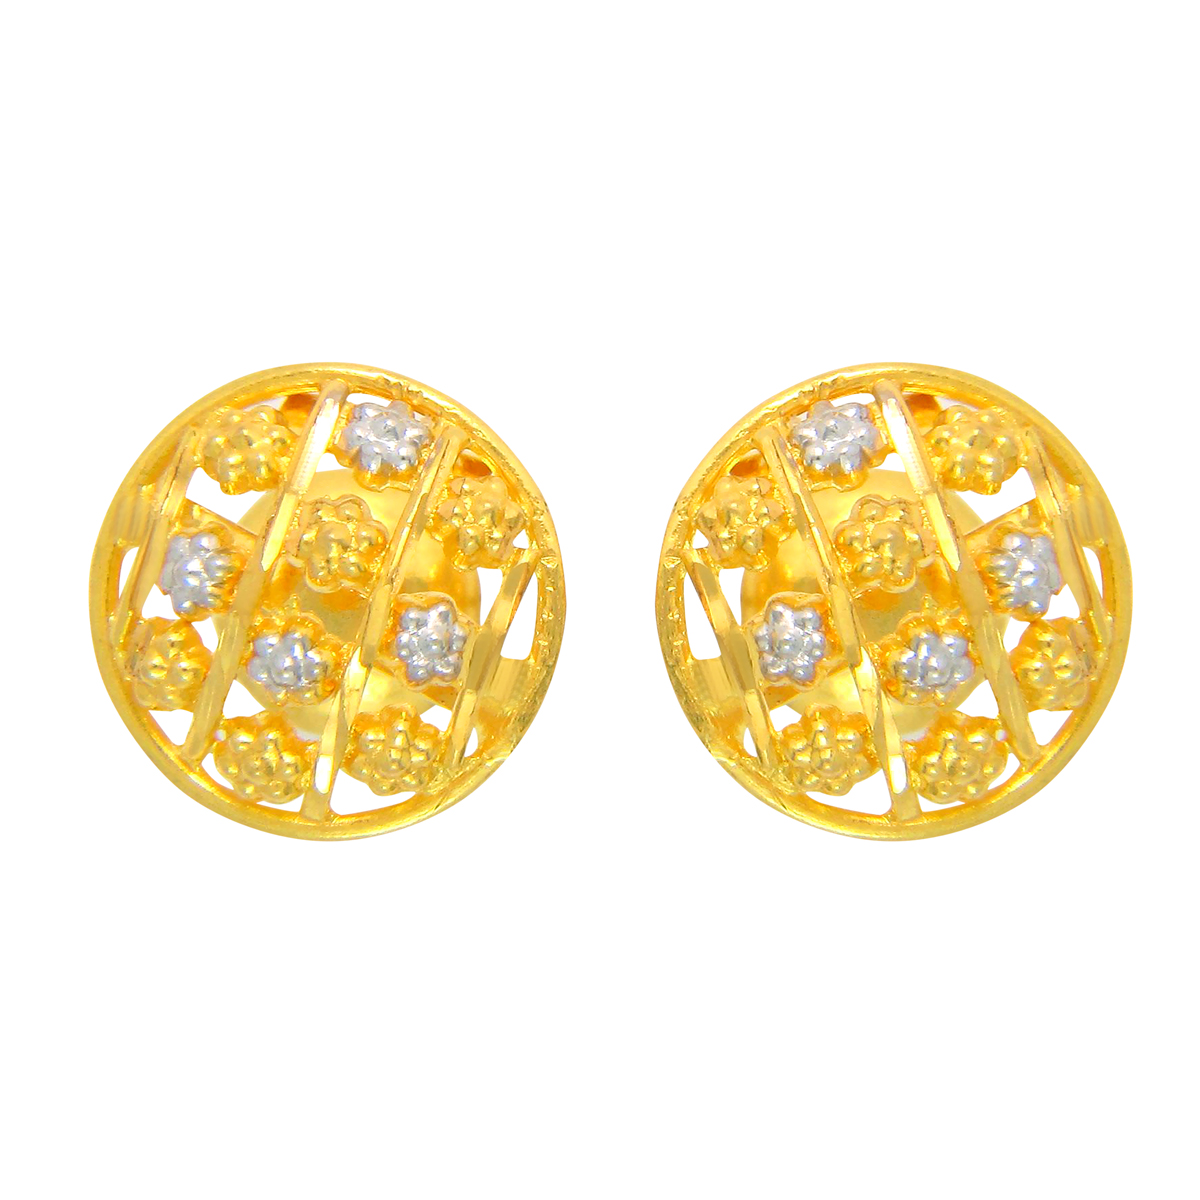 Popley 22Kt Gold Bandhan Earring - A98